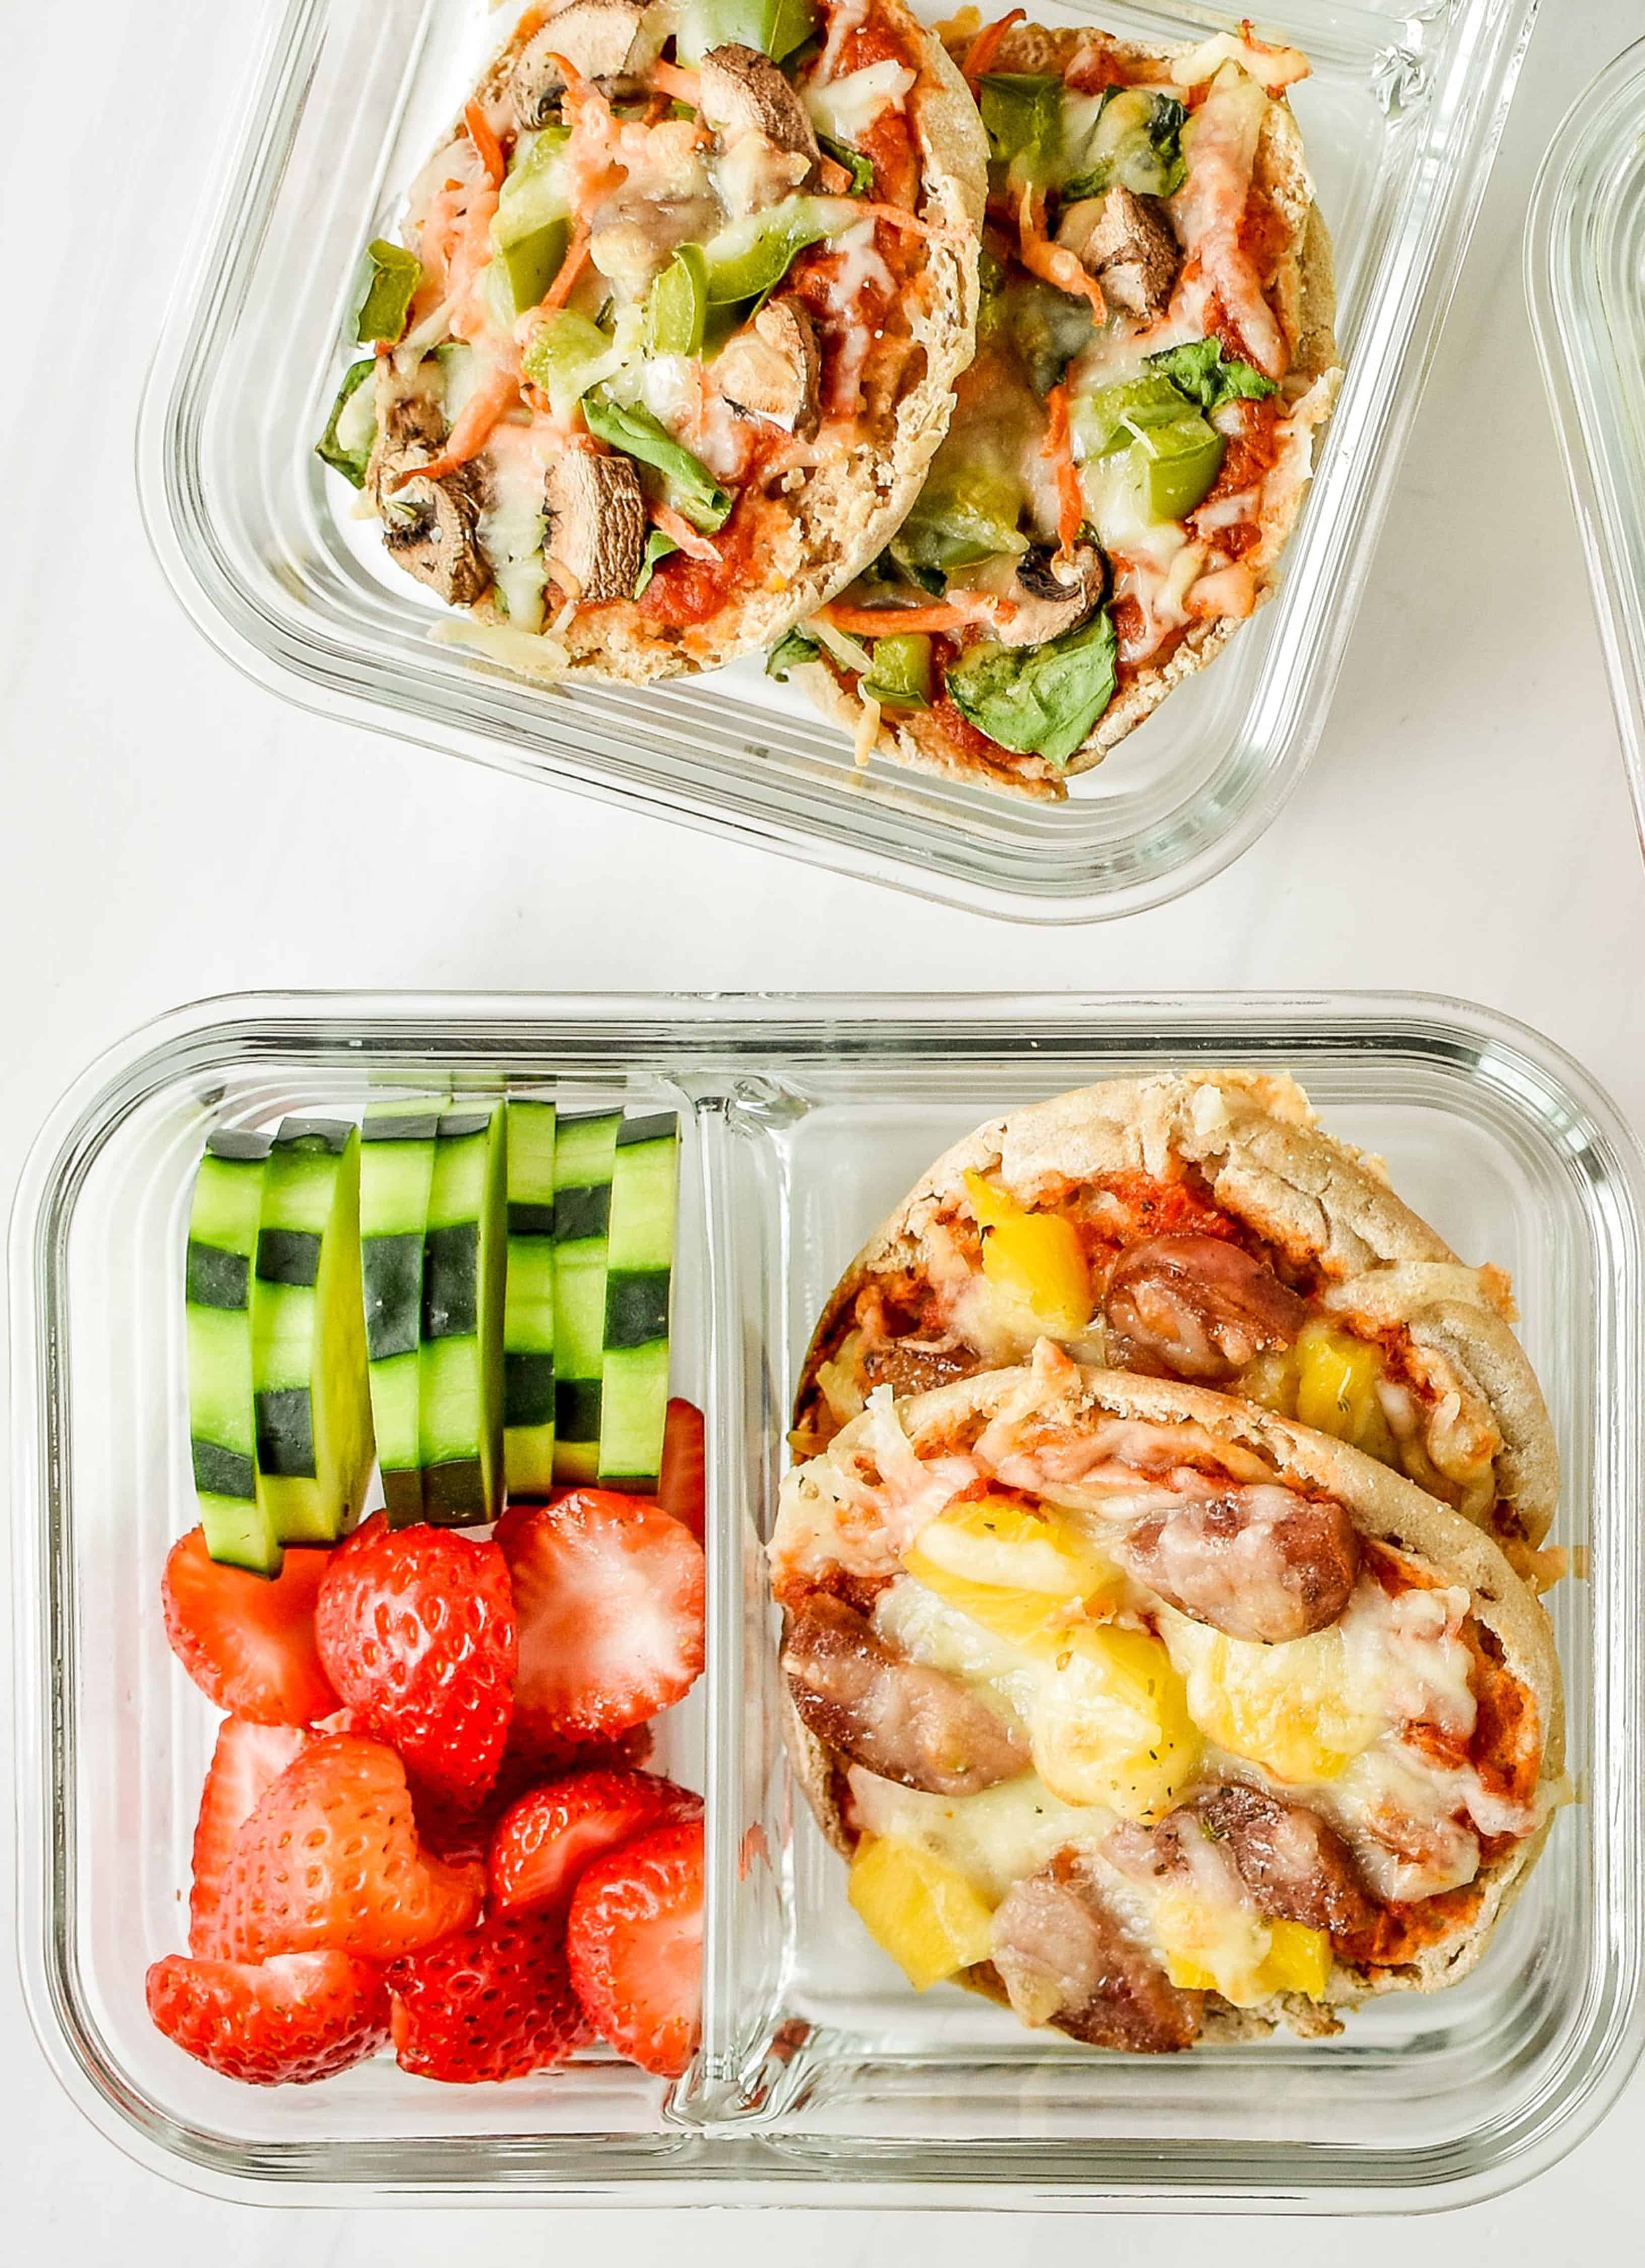 Yummy and healthy lunch box ideas for school. Recipe by Project meal plan.